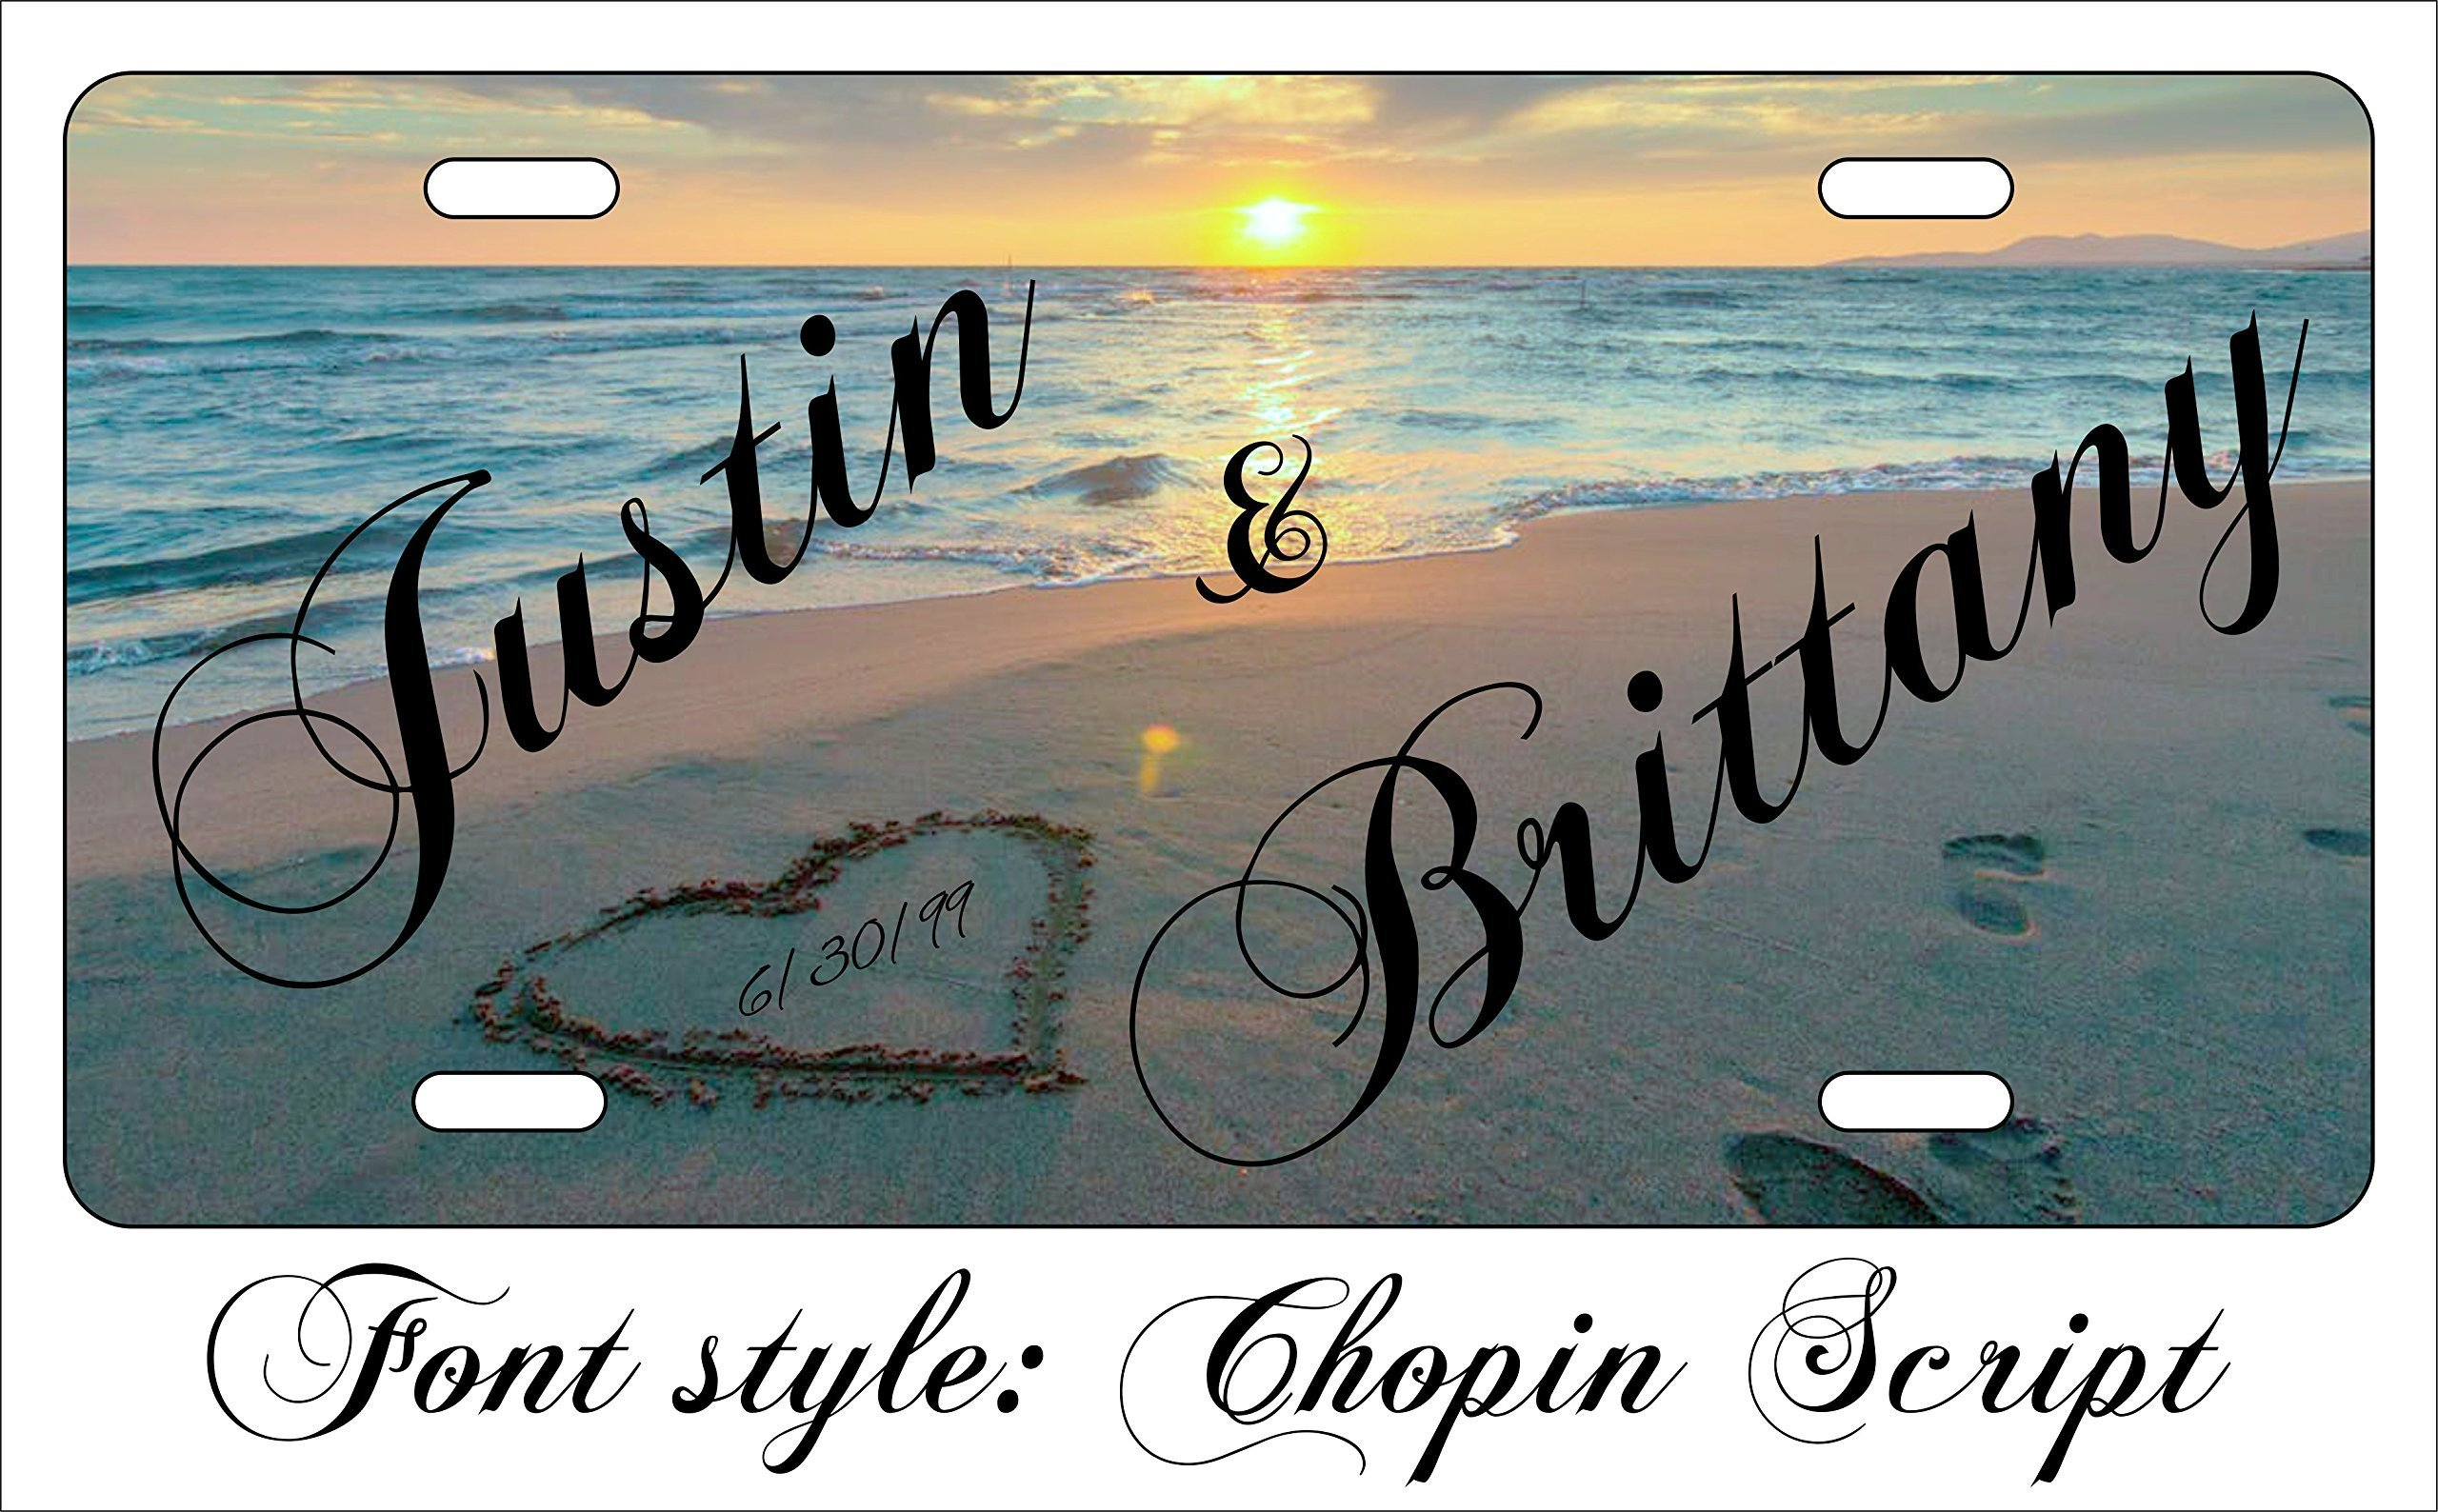 Personalized Custom License Plate with a Heart drawn in the sand on the beach with the sun setting Metal US Seller